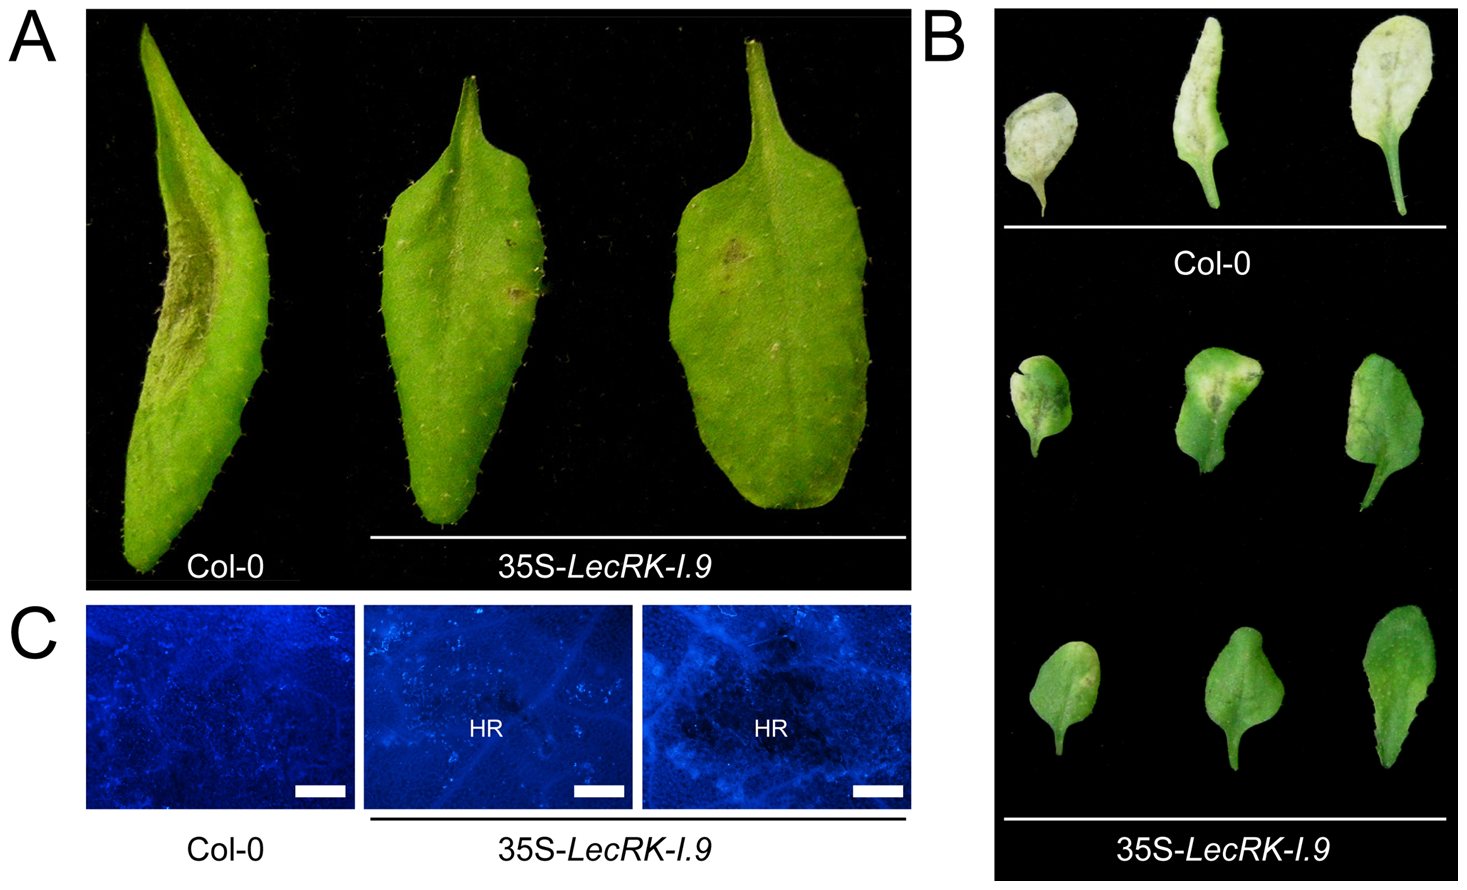 <i>LecRK-I.9</i> overexpression in Arabidopsis results in enhanced resistance to <i>P. brassicae</i>.